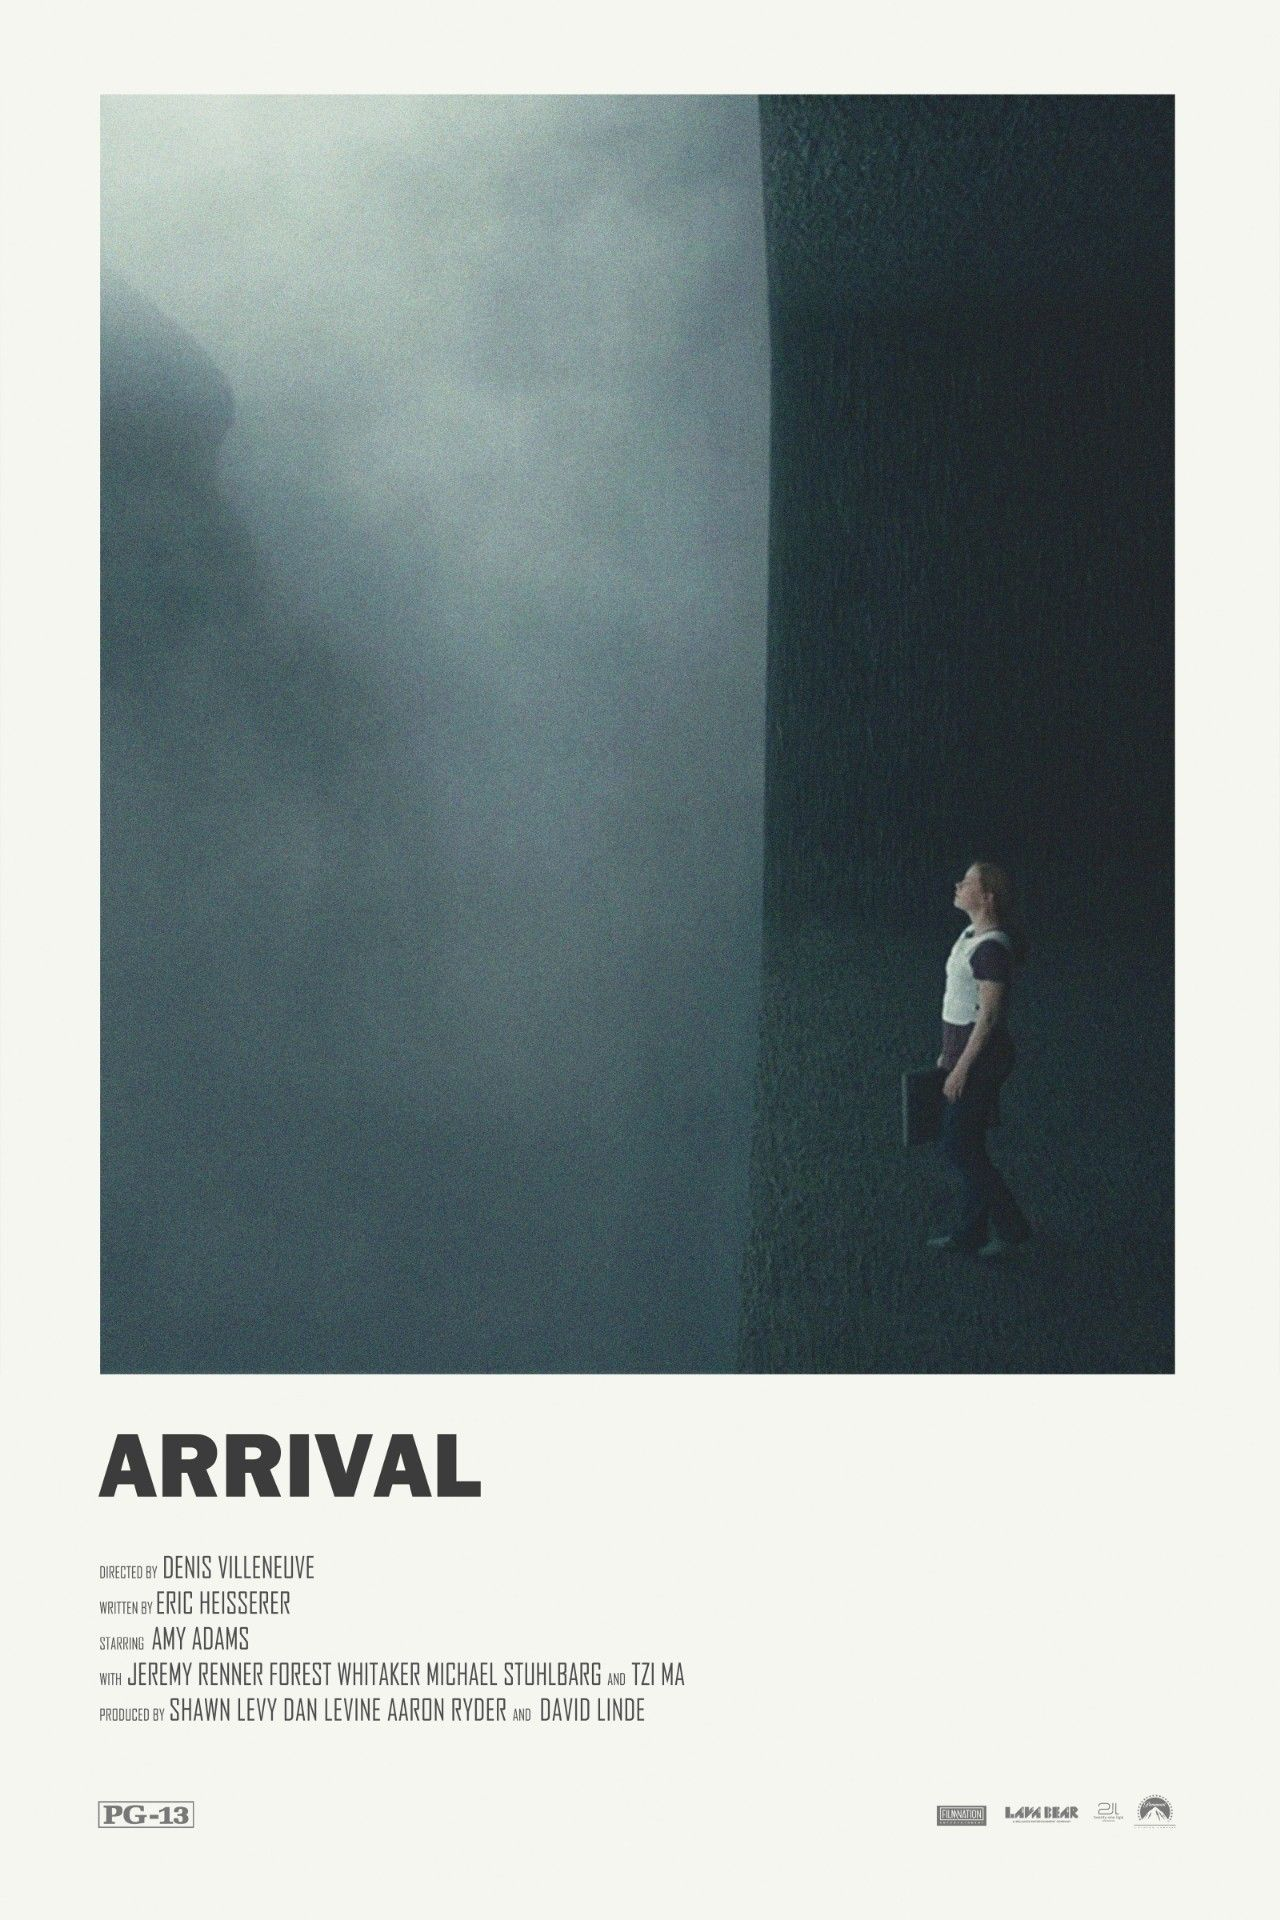 arrival alternative movie poster visit my store c4films